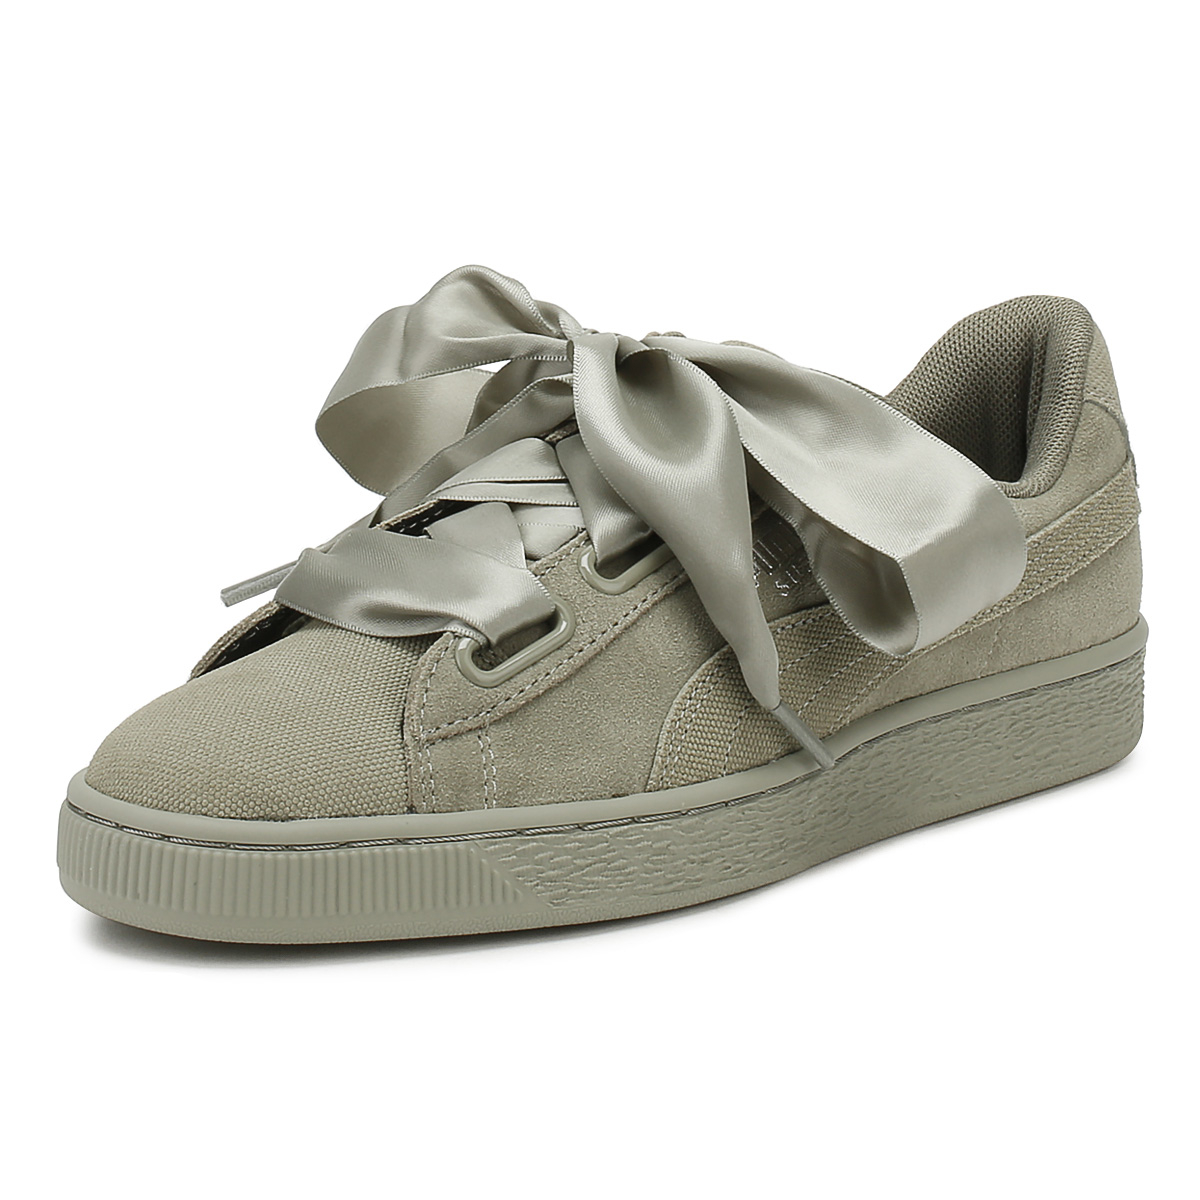 598d18938904 Details about PUMA Womens Rock Grey Heart Pebble Suede Trainers Lace Up  Sport Casual Shoes